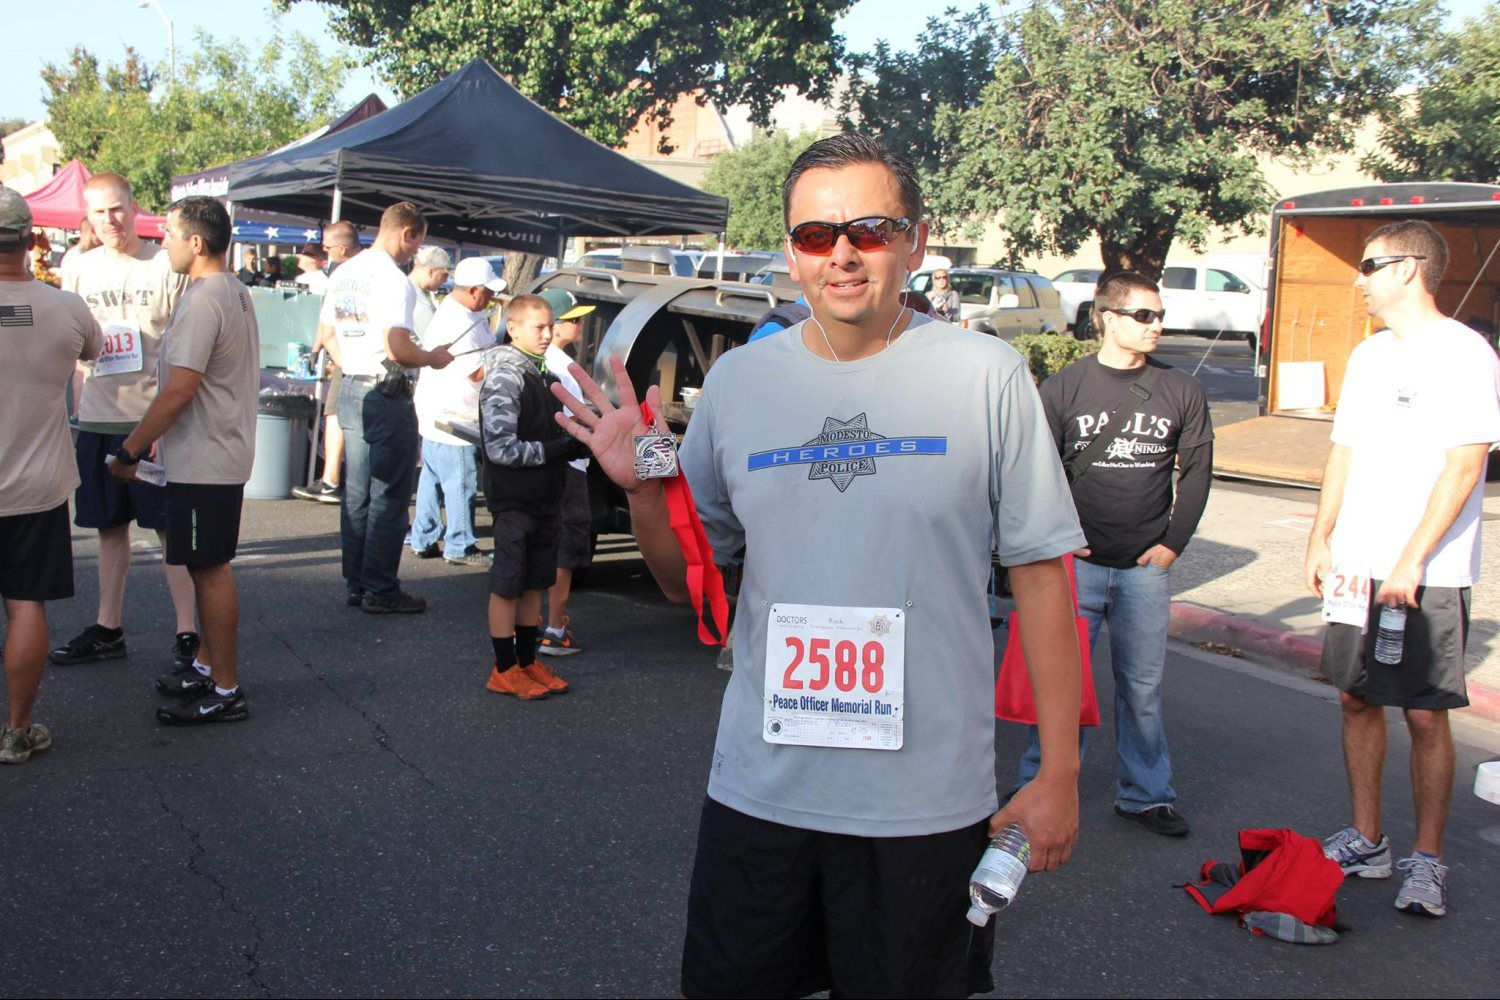 24aa19ba24 Heroes of Stanislaus County - Peace Officer Memorial Run